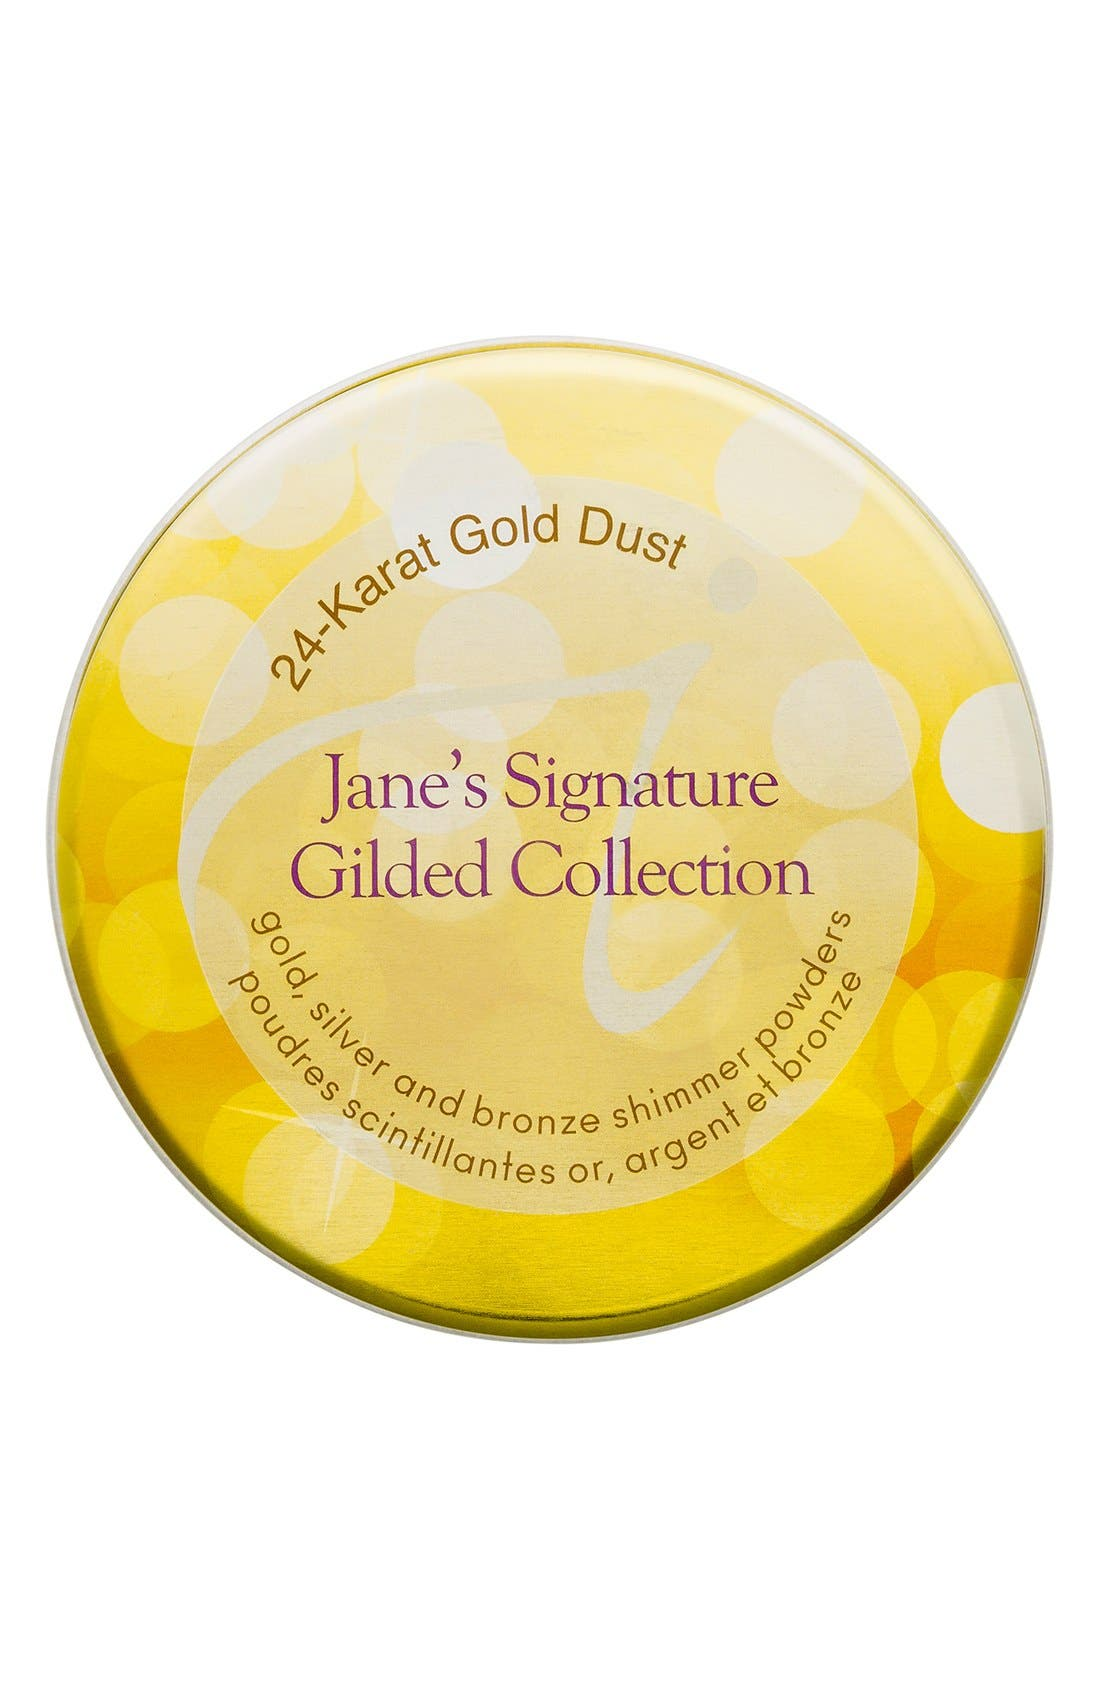 '24-Karat Gold Dust' Signature Gilded Collection,                             Alternate thumbnail 3, color,